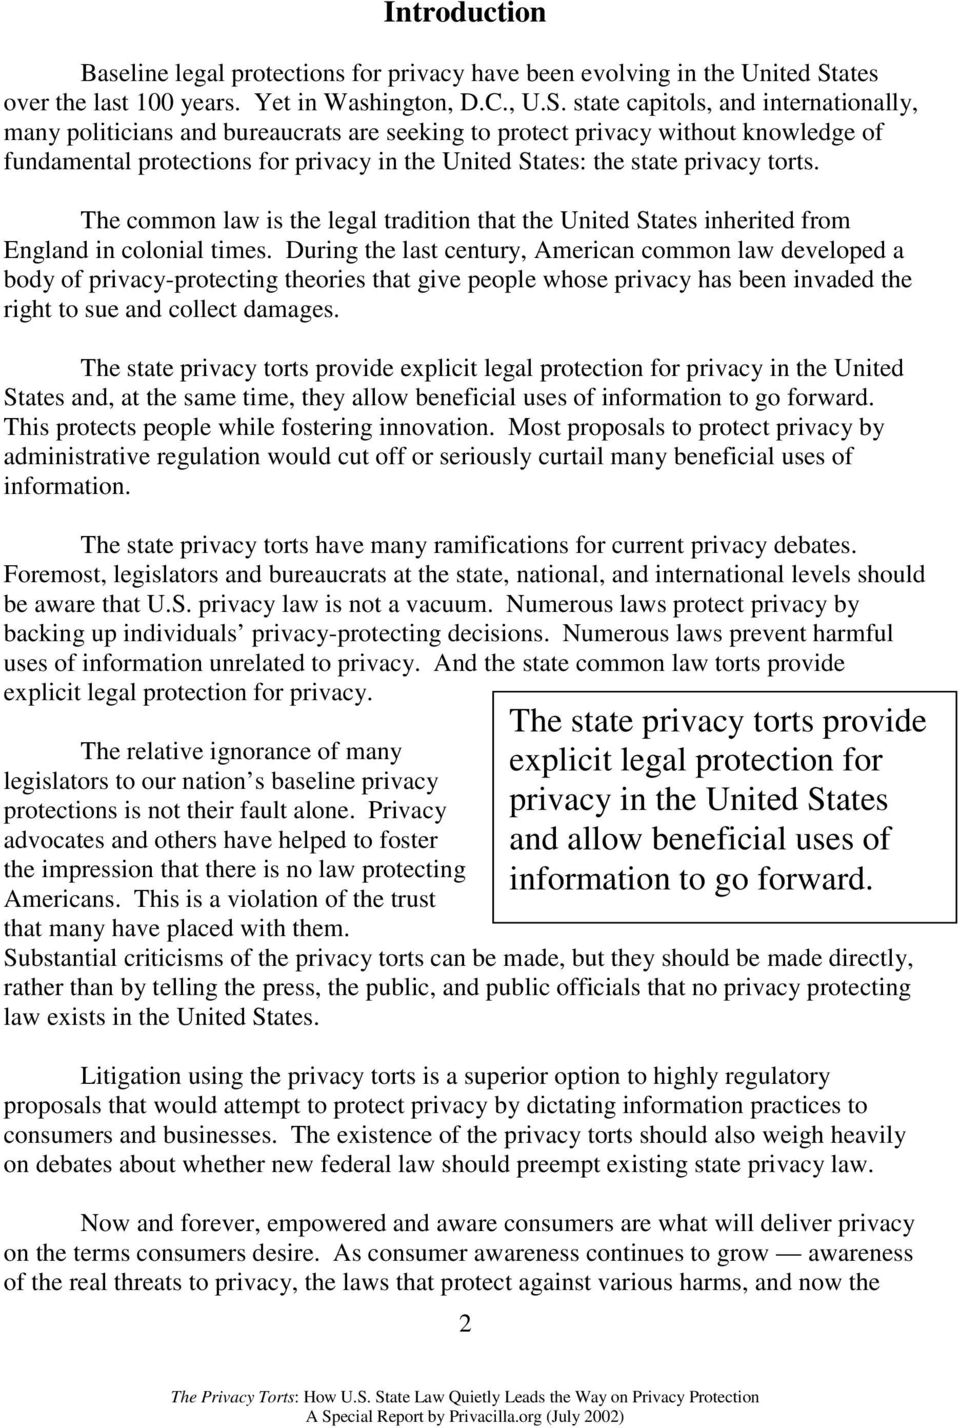 state capitols, and internationally, many politicians and bureaucrats are seeking to protect privacy without knowledge of fundamental protections for privacy in the United States: the state privacy